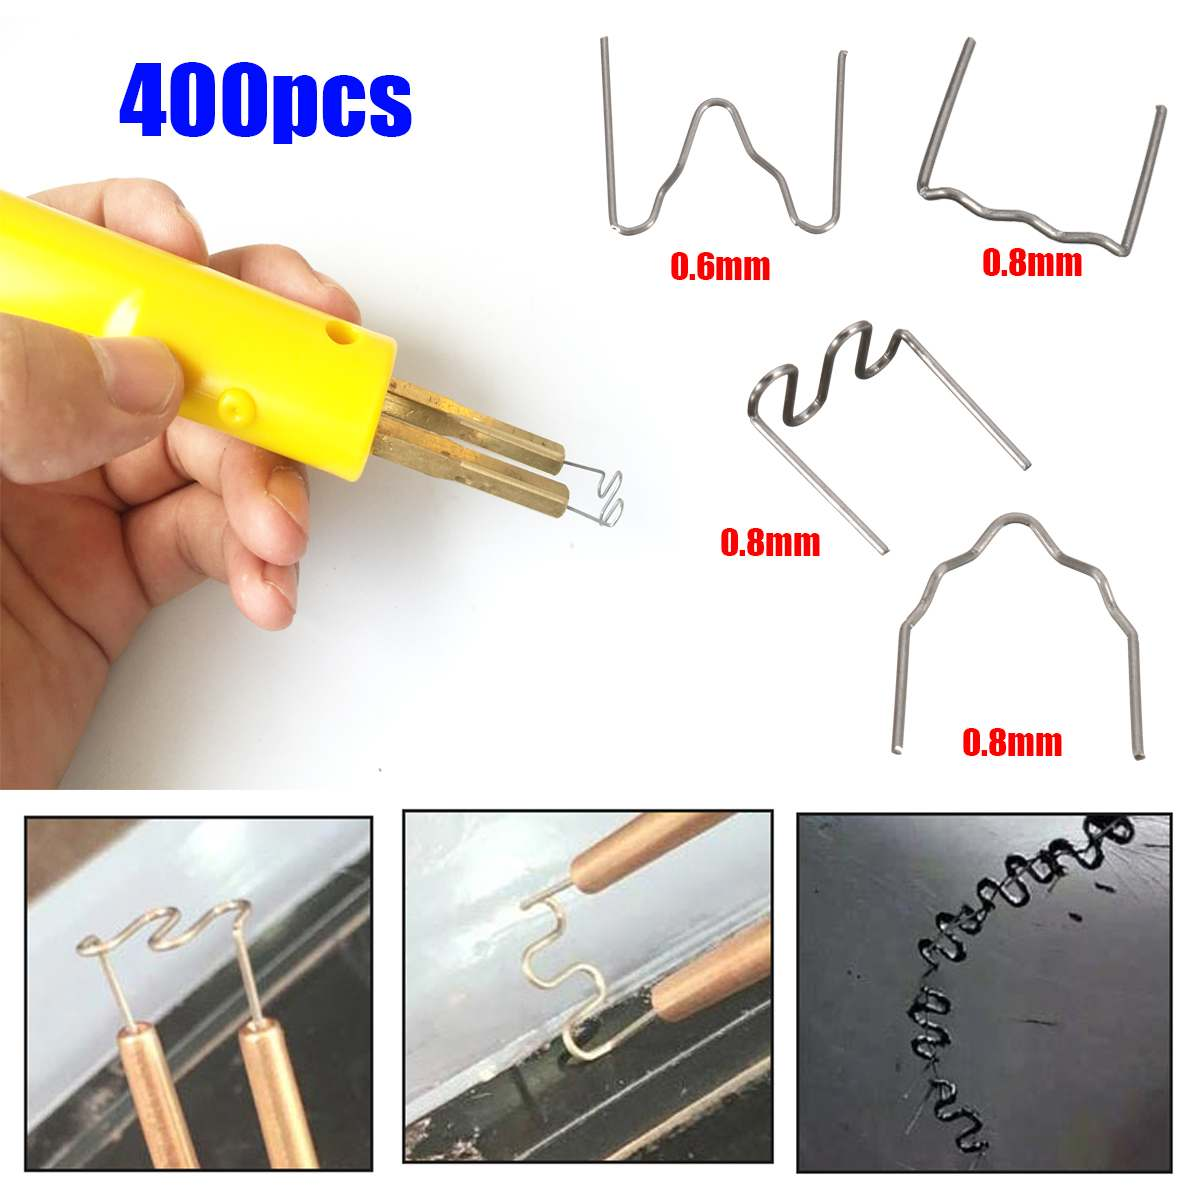 400pcs 100pcs/type Thermal Thermo Staples Repair Kit For Hot Stapler Bumper Auto For Fender Welders